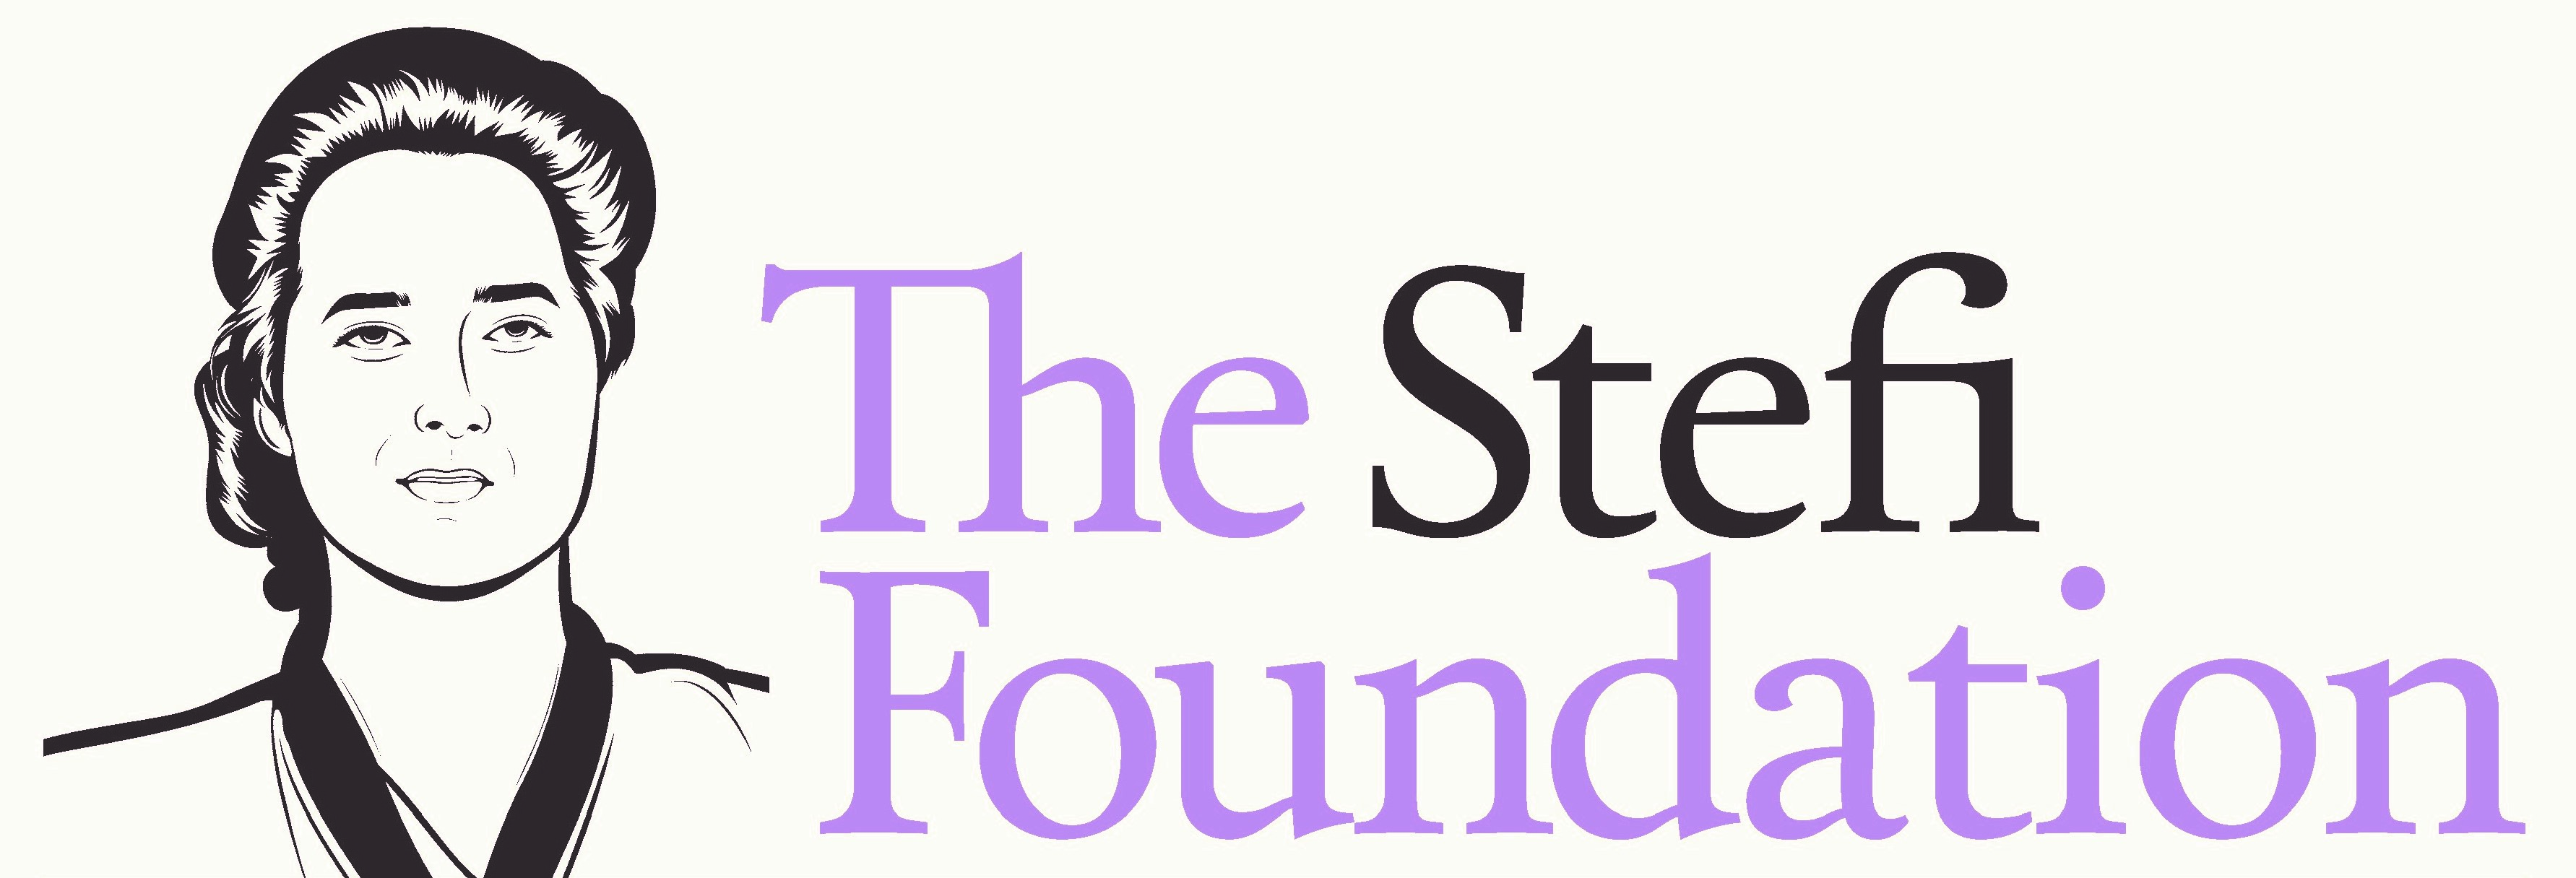 The Stefi Foundation - Stefania Podgorska Burzminski and Helena Podgrorska